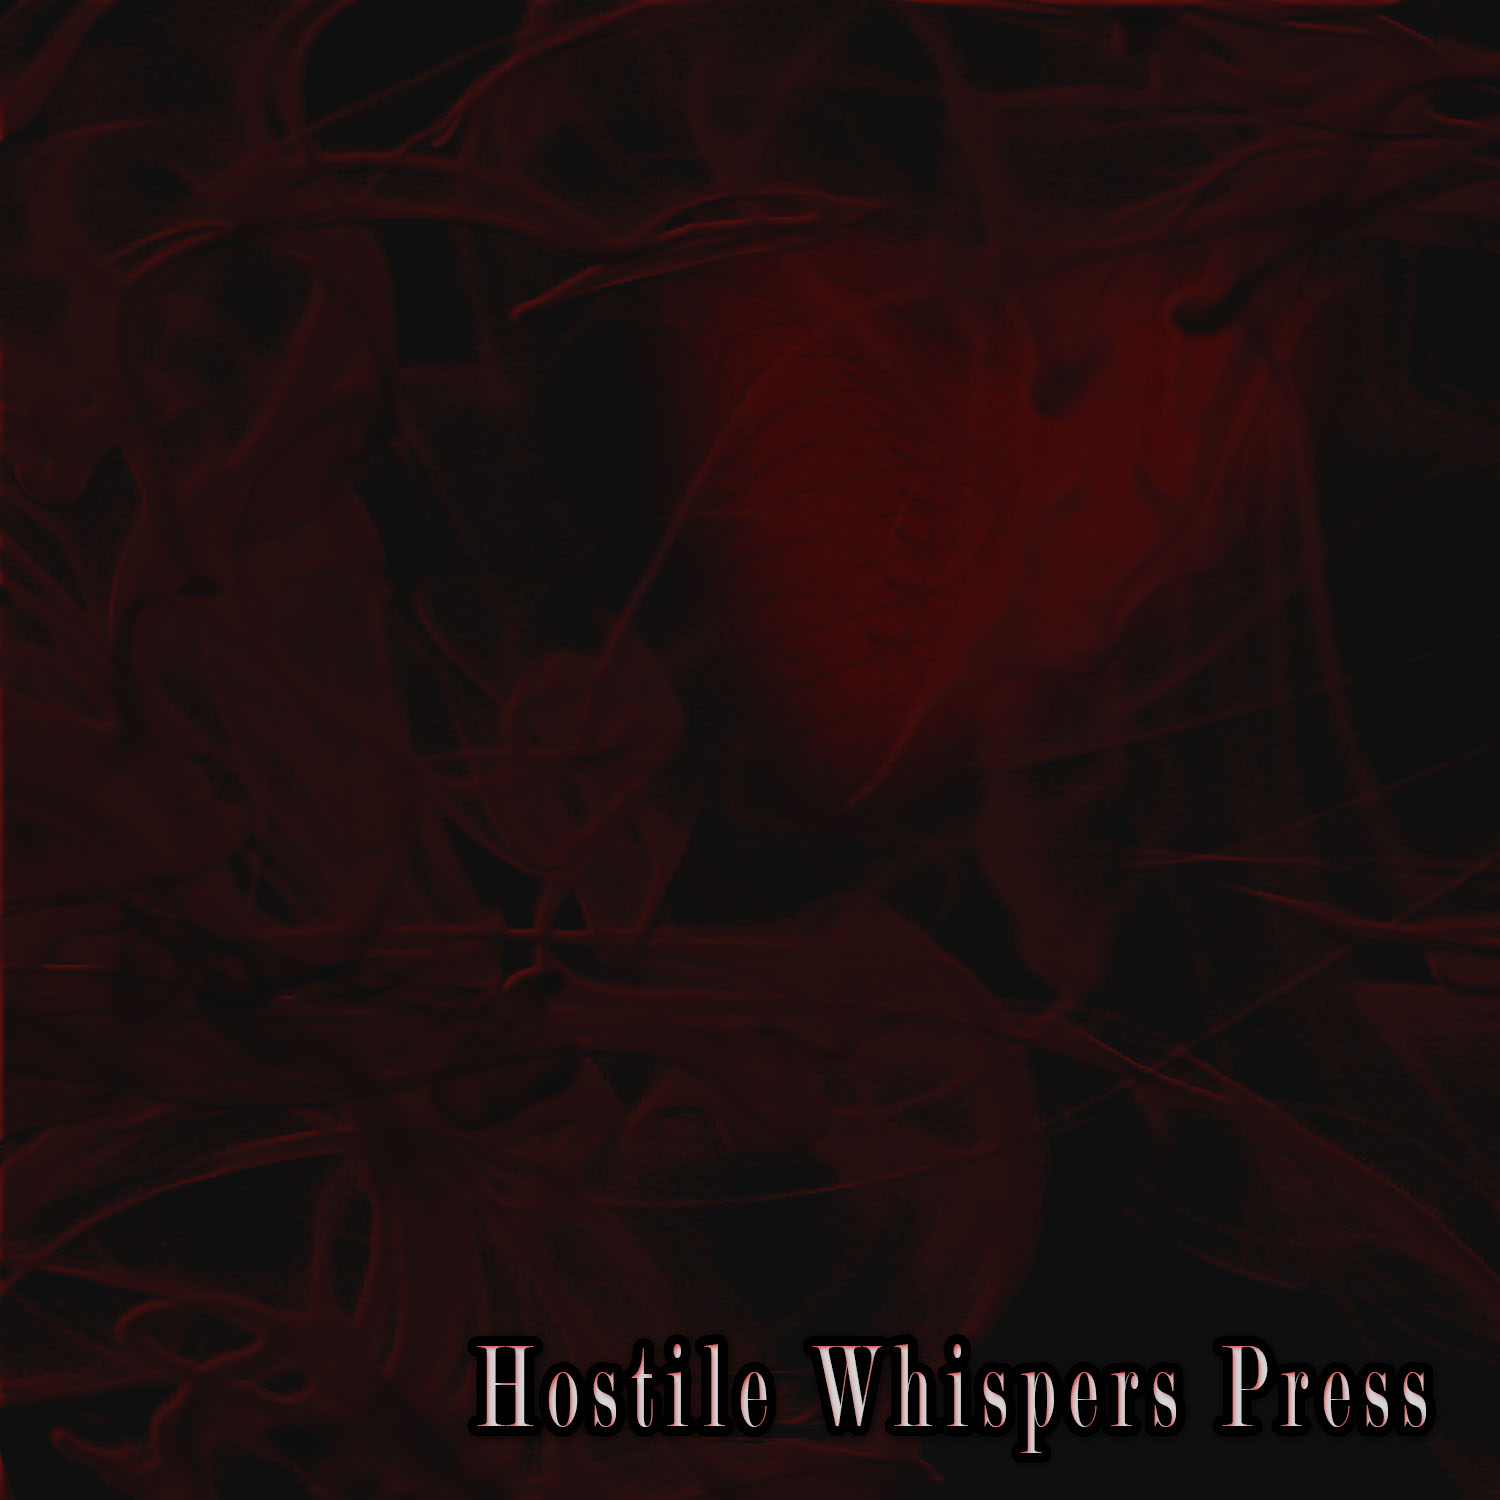 Hostile Whispers Press, LLC